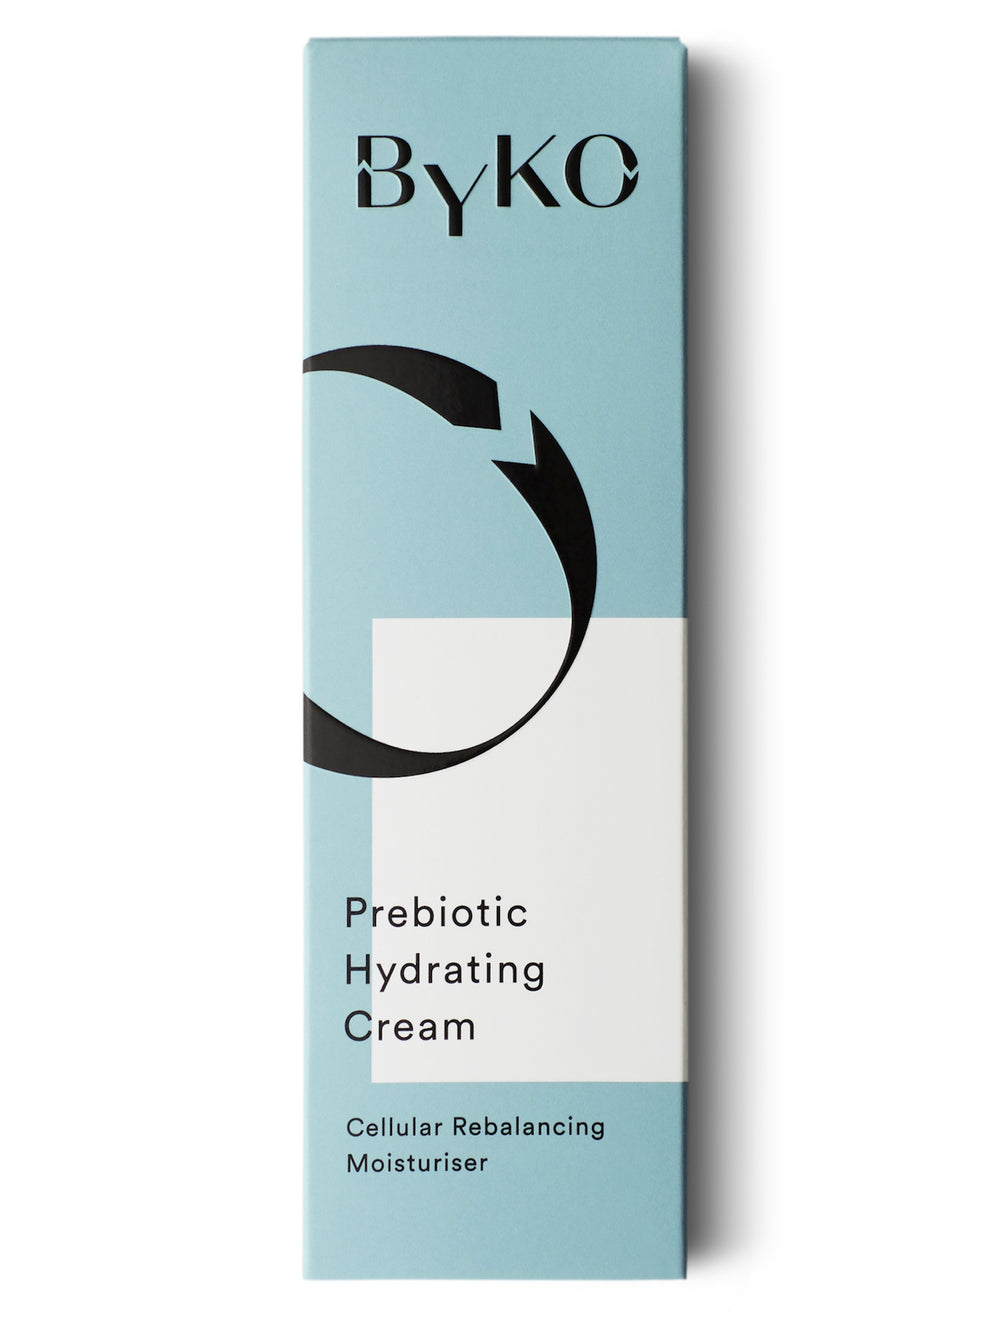 Prebiotic Hydrating Cream